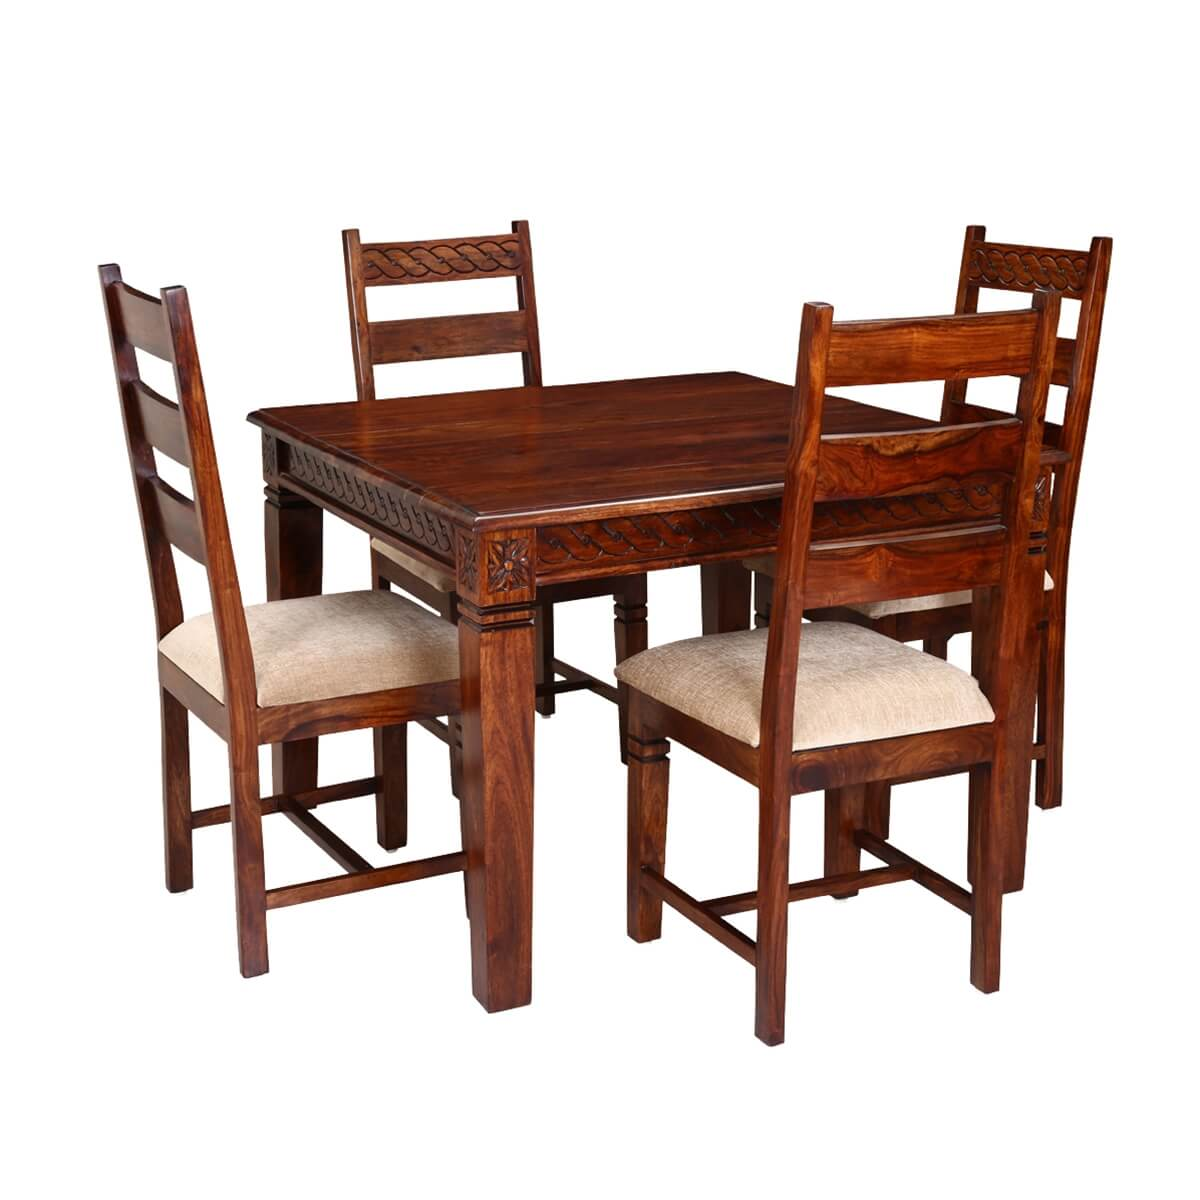 Dining Table Square: Handcrafted Solid Wood 5pc Square Dining Table And Chair Set